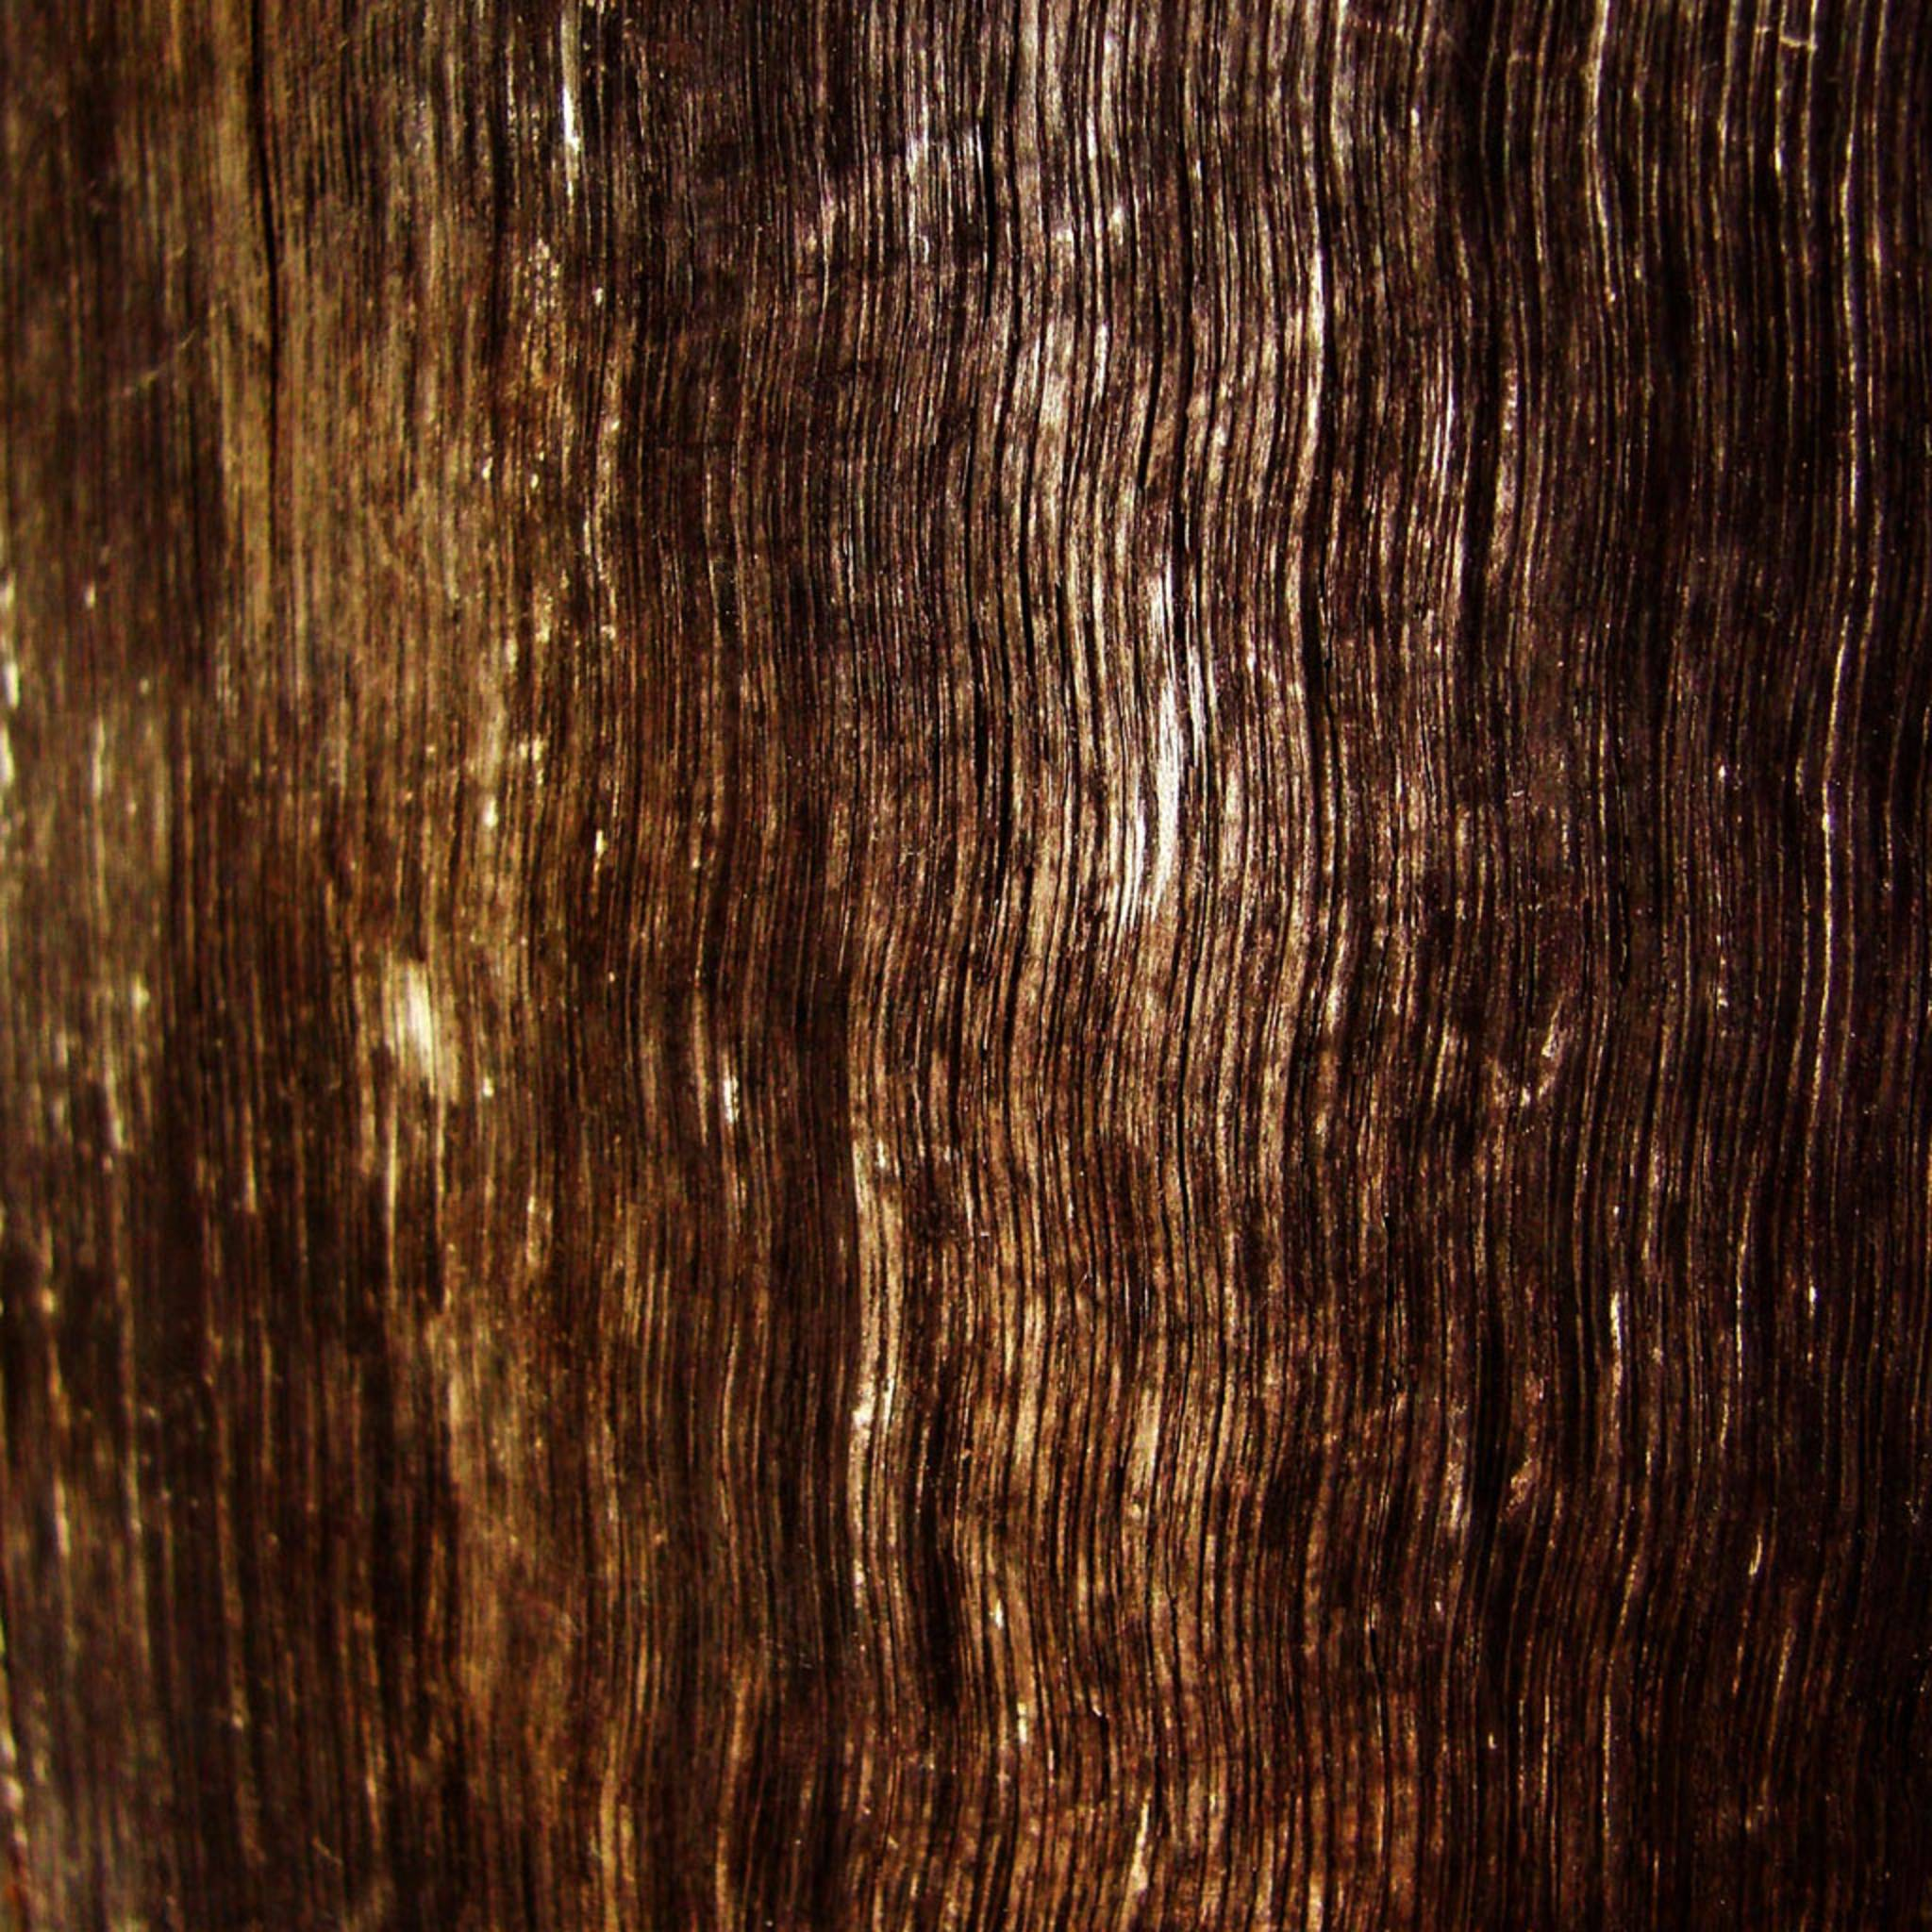 Wood Grain Wallpaper wood grain wallpapers hd - wallpaper cave